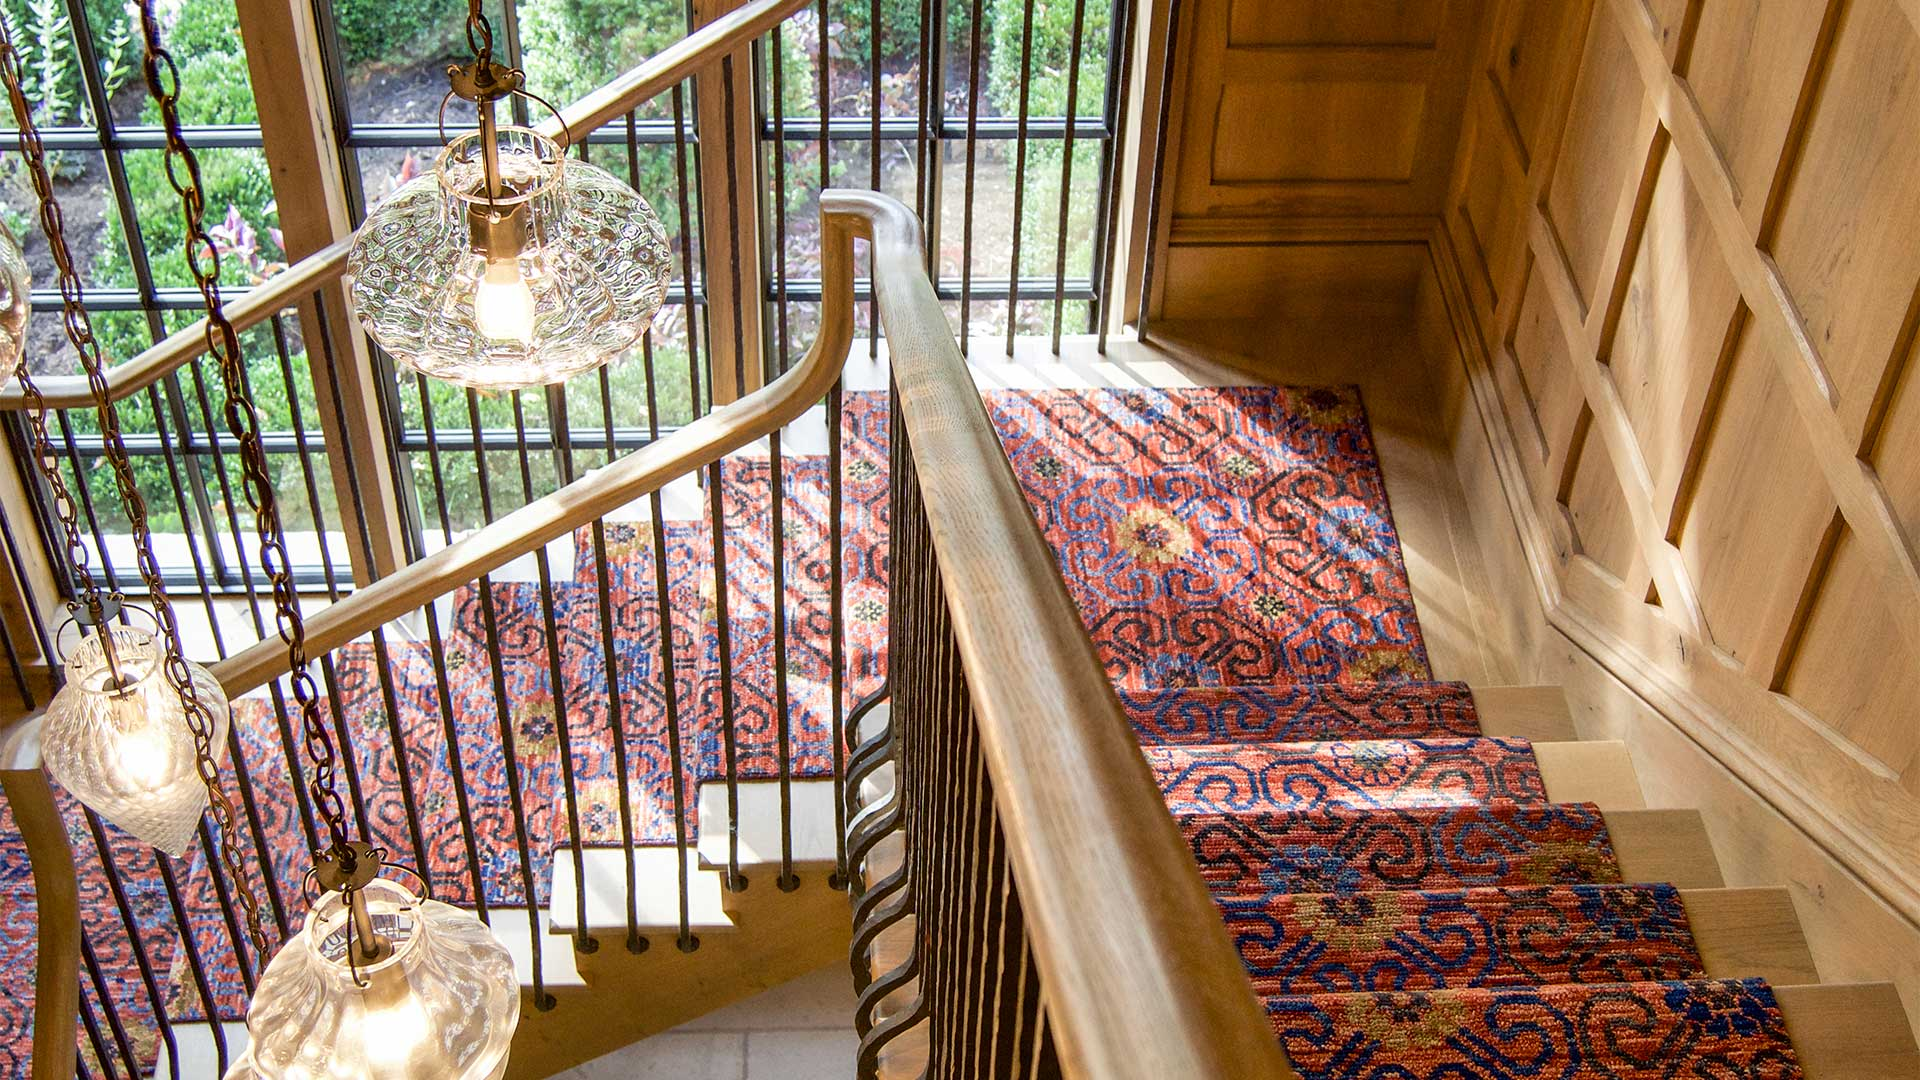 Wooden stairs with carpet and steel windows